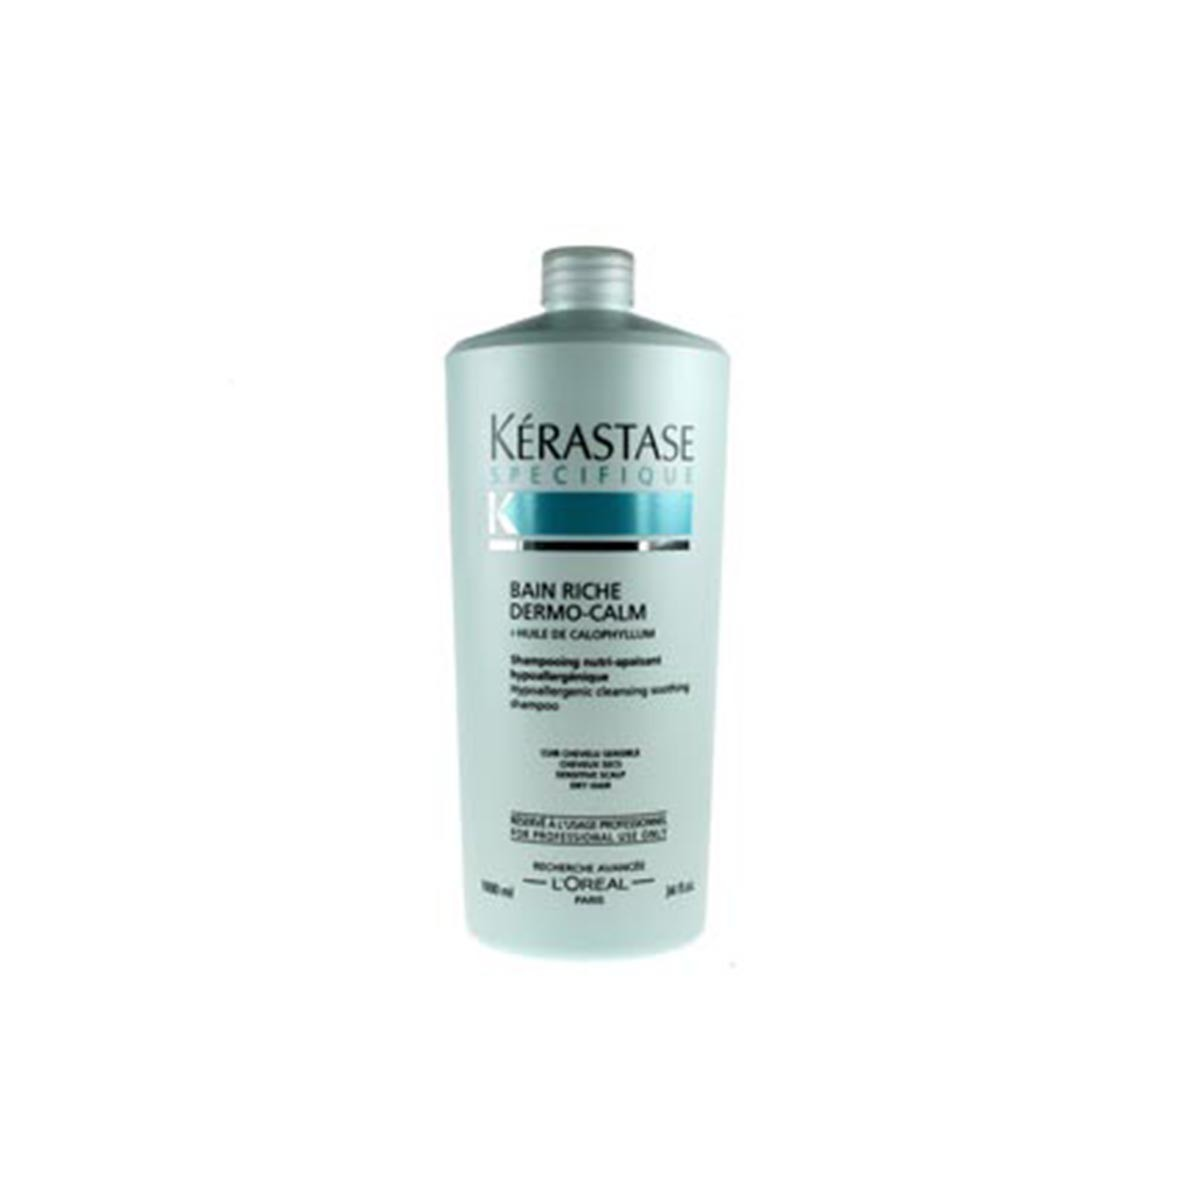 Kerastase Specifique Bain Riche Dermocalm Sensitive Hair 1000 ml